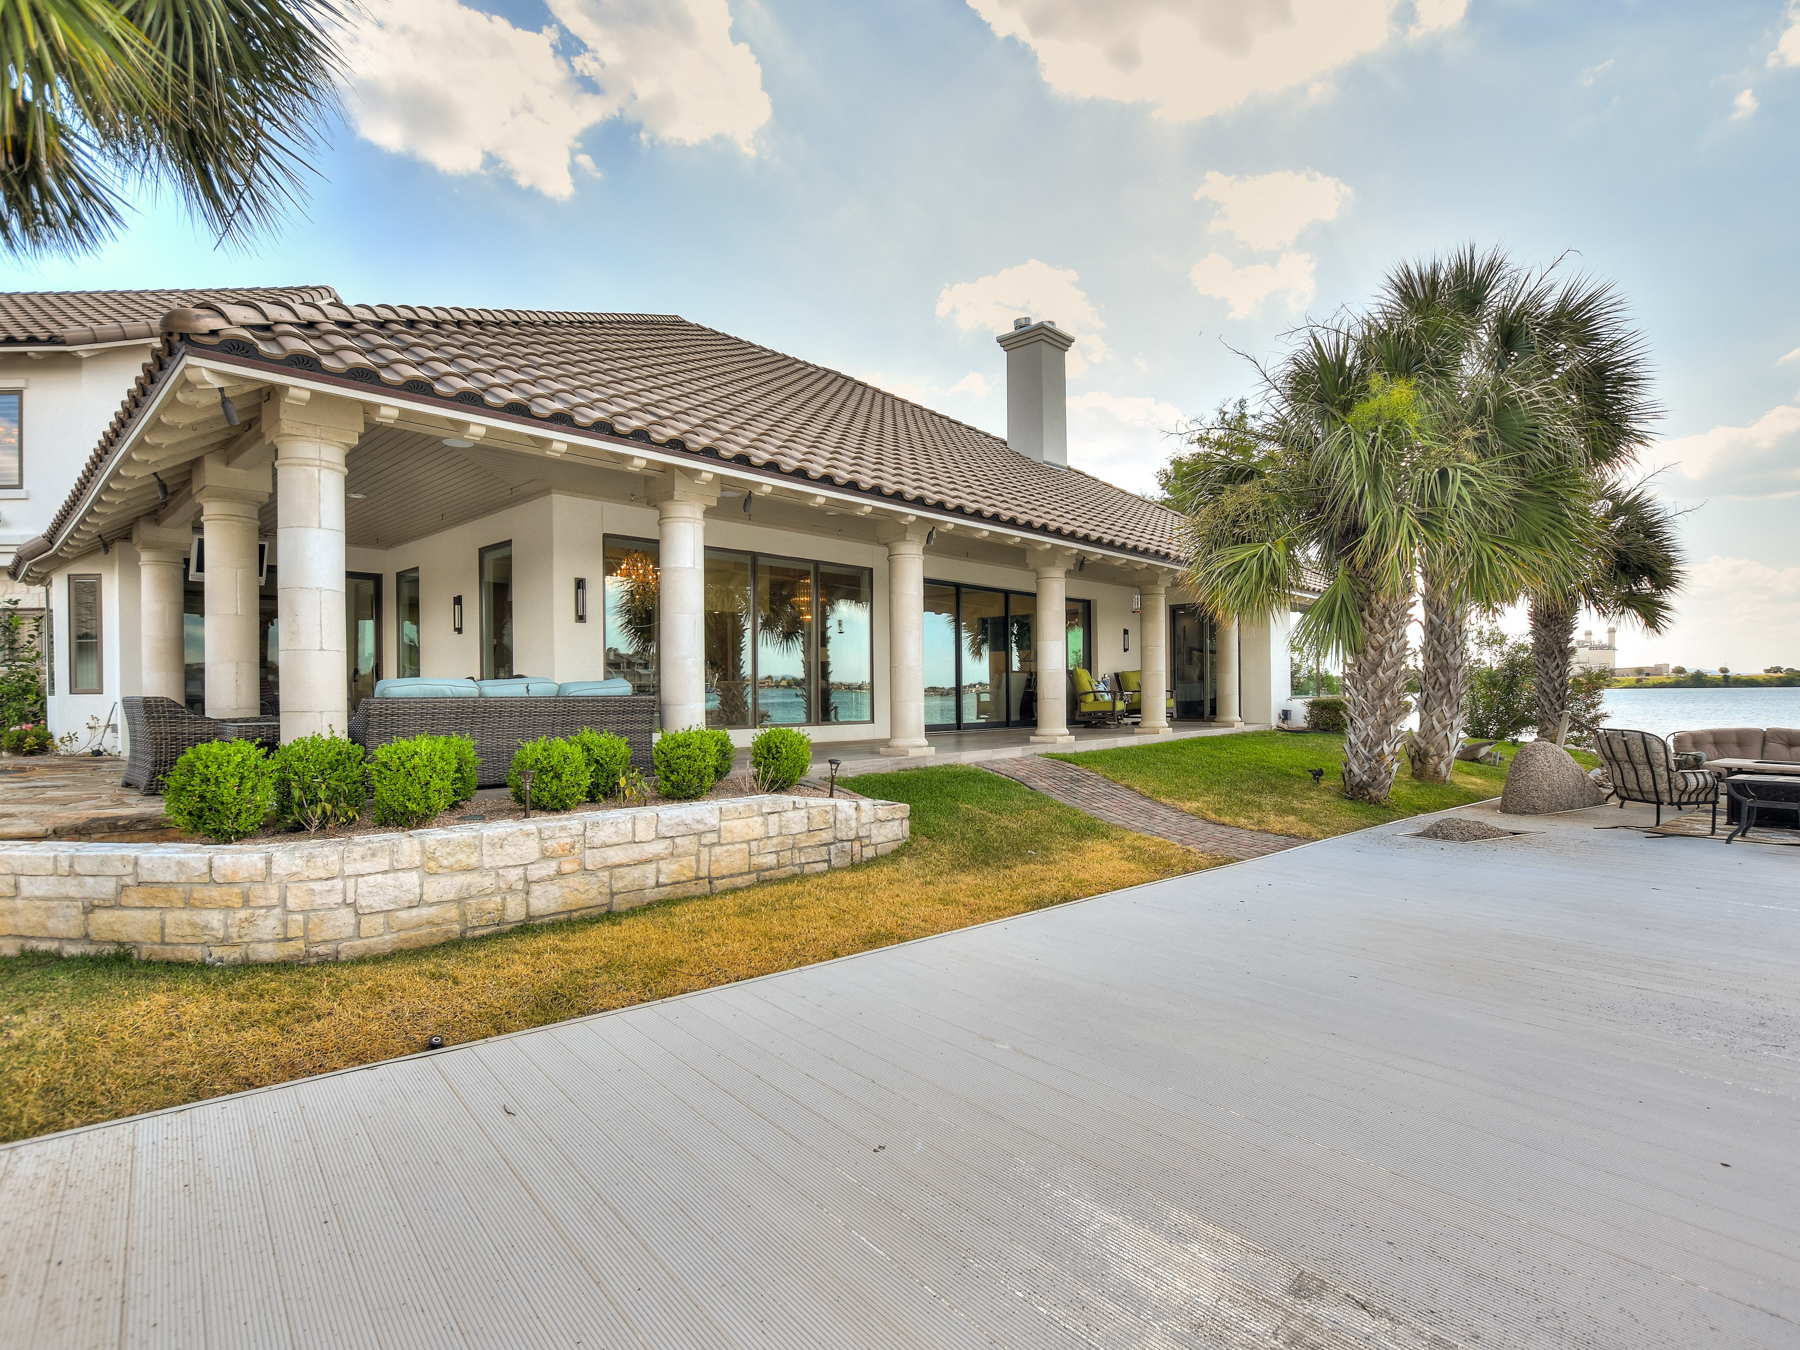 Additional photo for property listing at The Best of Horseshoe Bay 1022 Red Sails Horseshoe Bay, Texas 78657 United States